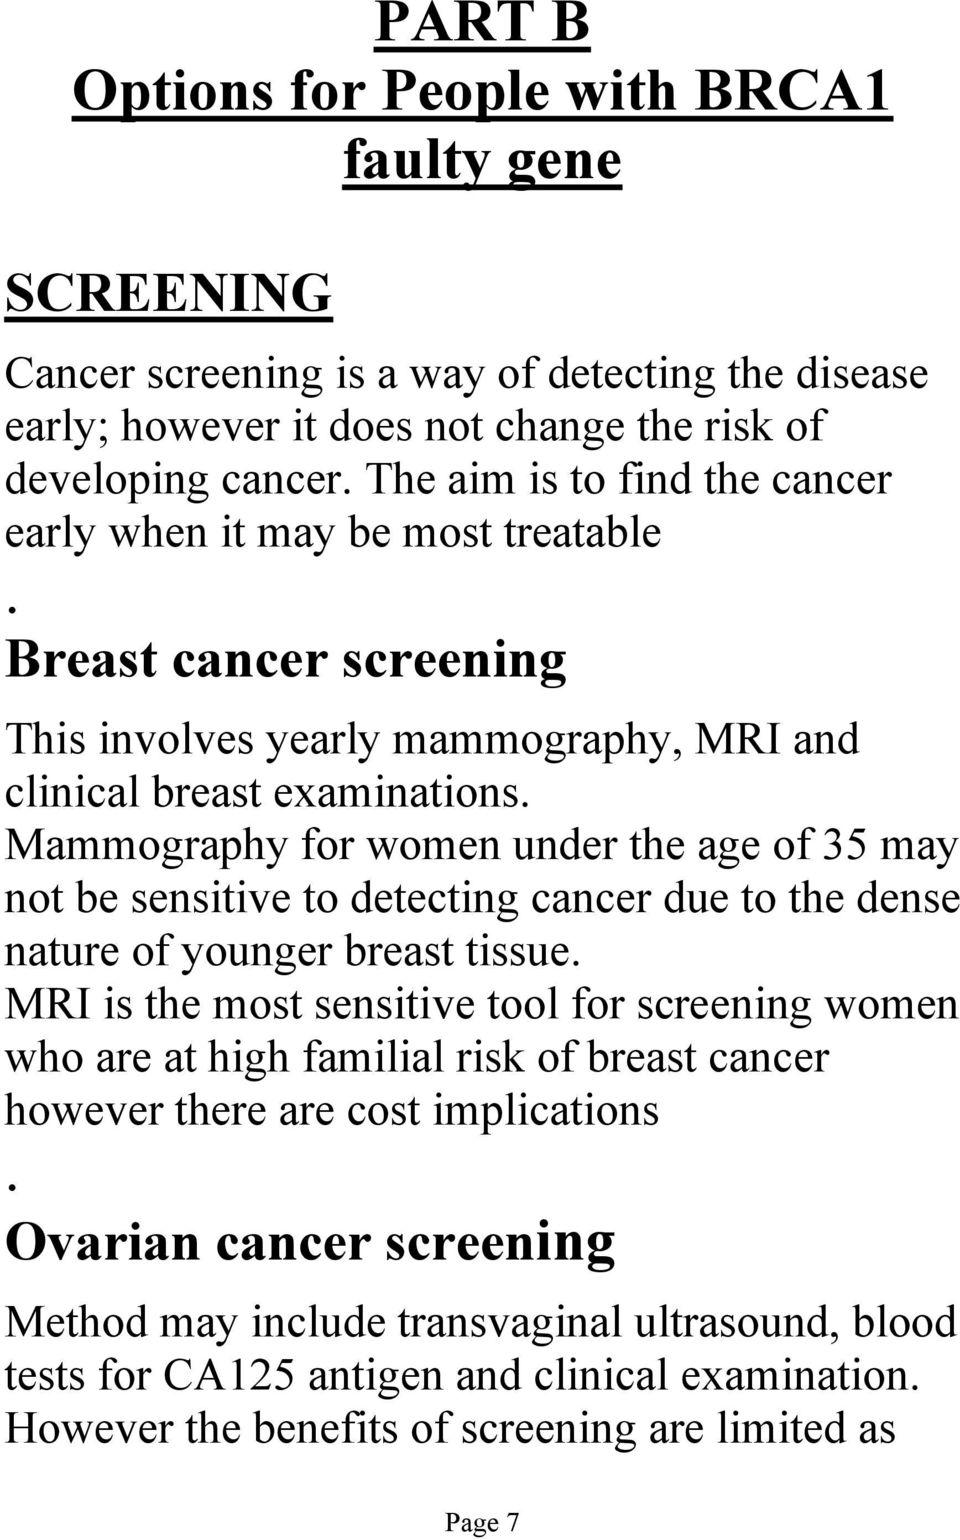 Mammography for women under the age of 35 may not be sensitive to detecting cancer due to the dense nature of younger breast tissue.